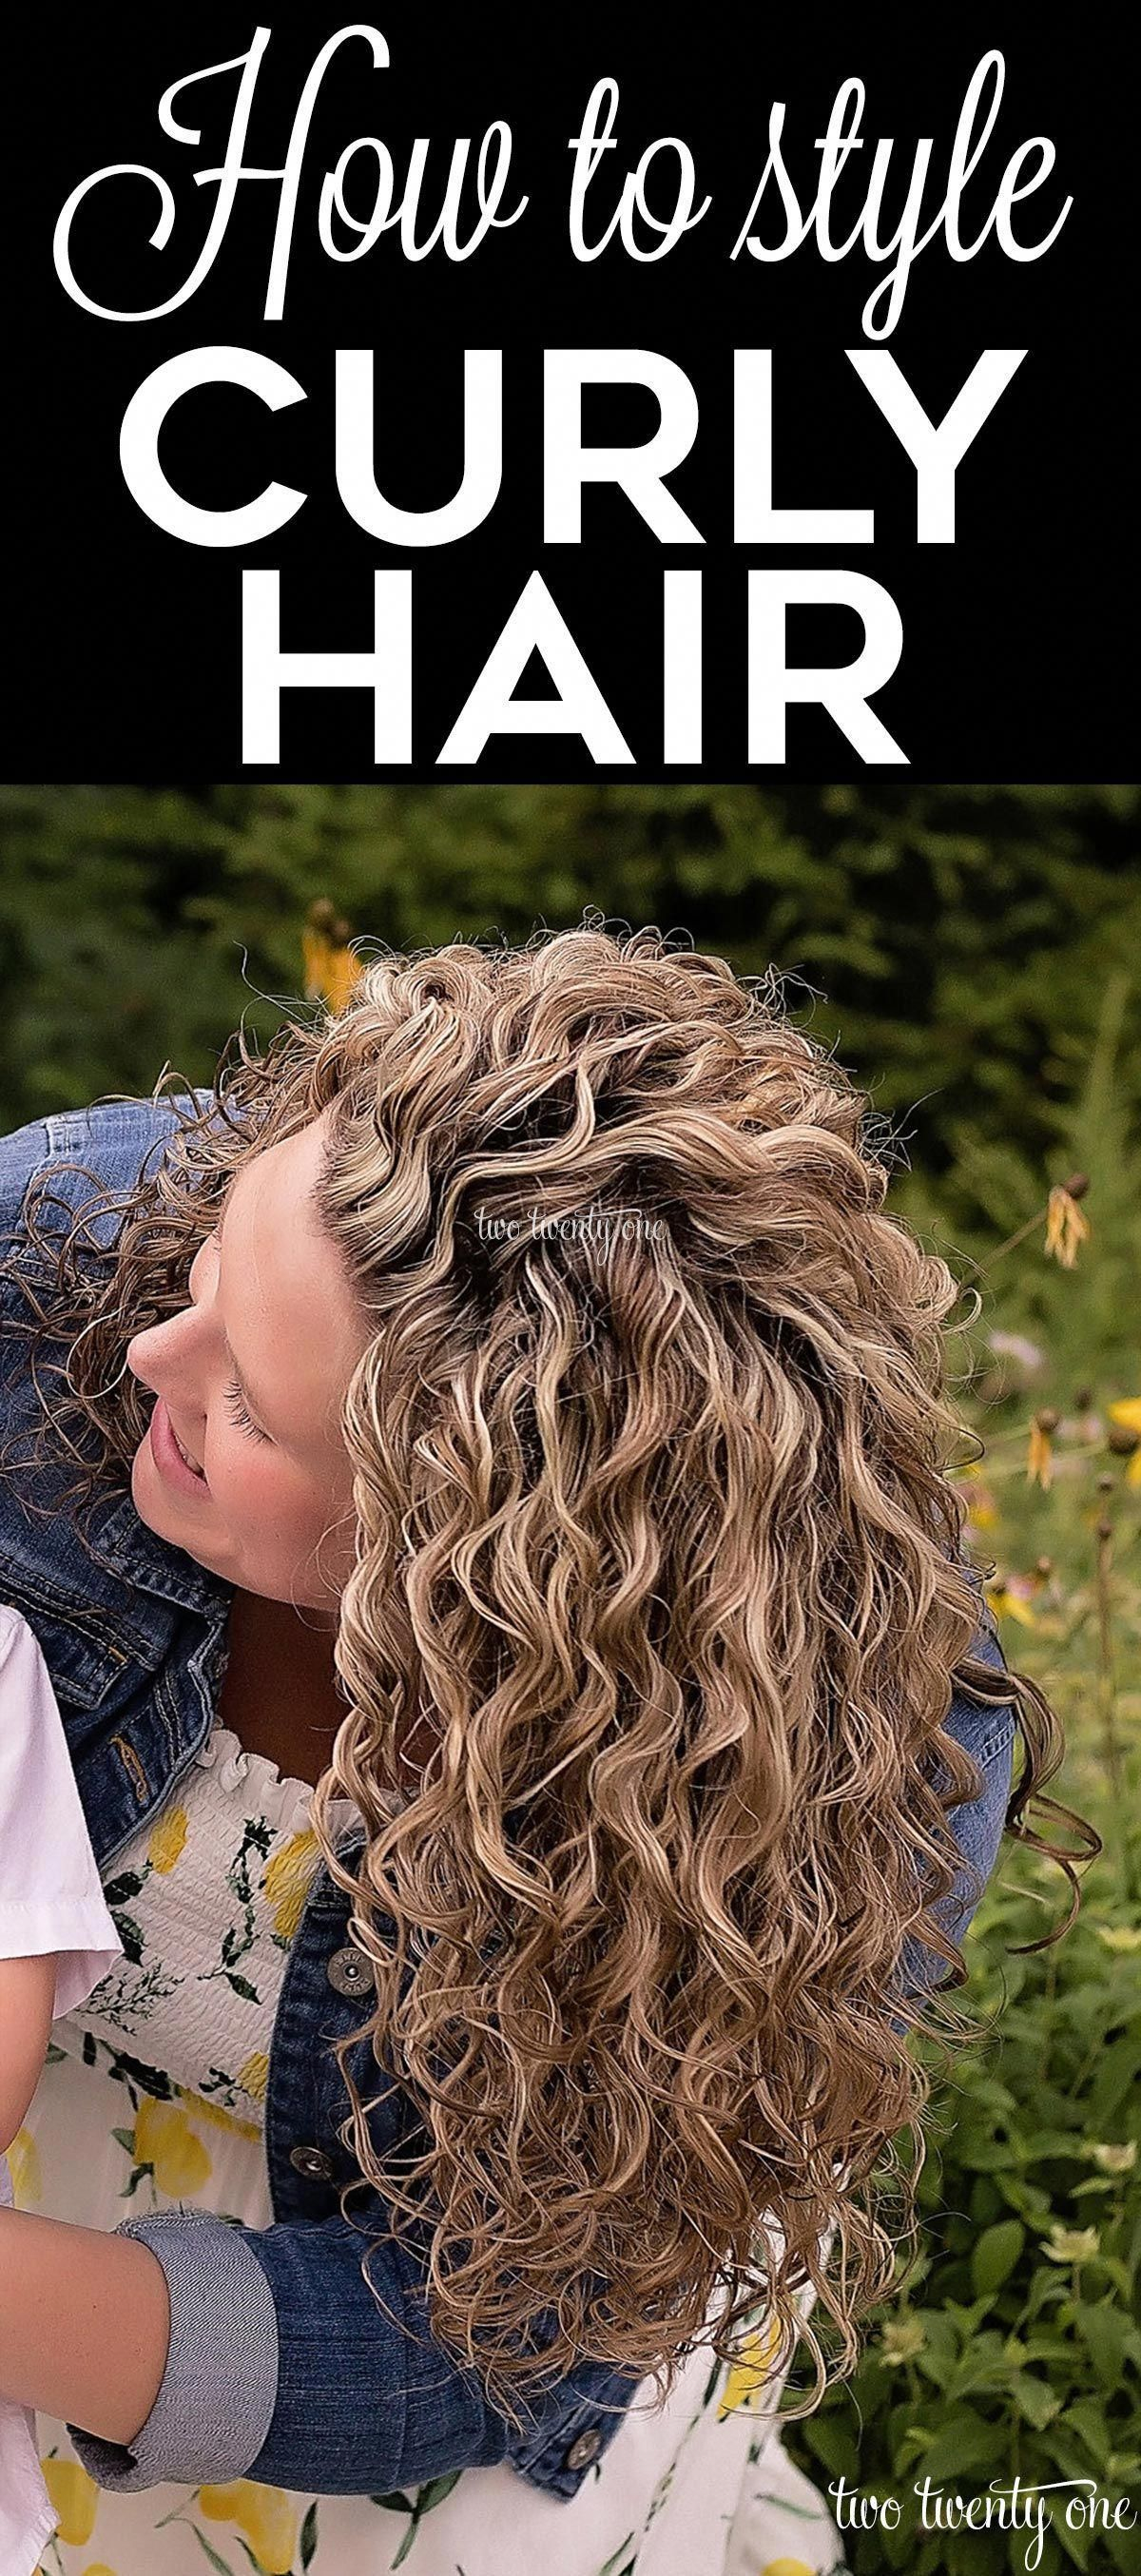 How To Style Curly Hair Step By Step Tutorial Featuring Must Have Products And Techniques Curlyhai Curly Hair Styles Curly Hair Styles Naturally Hair Advice